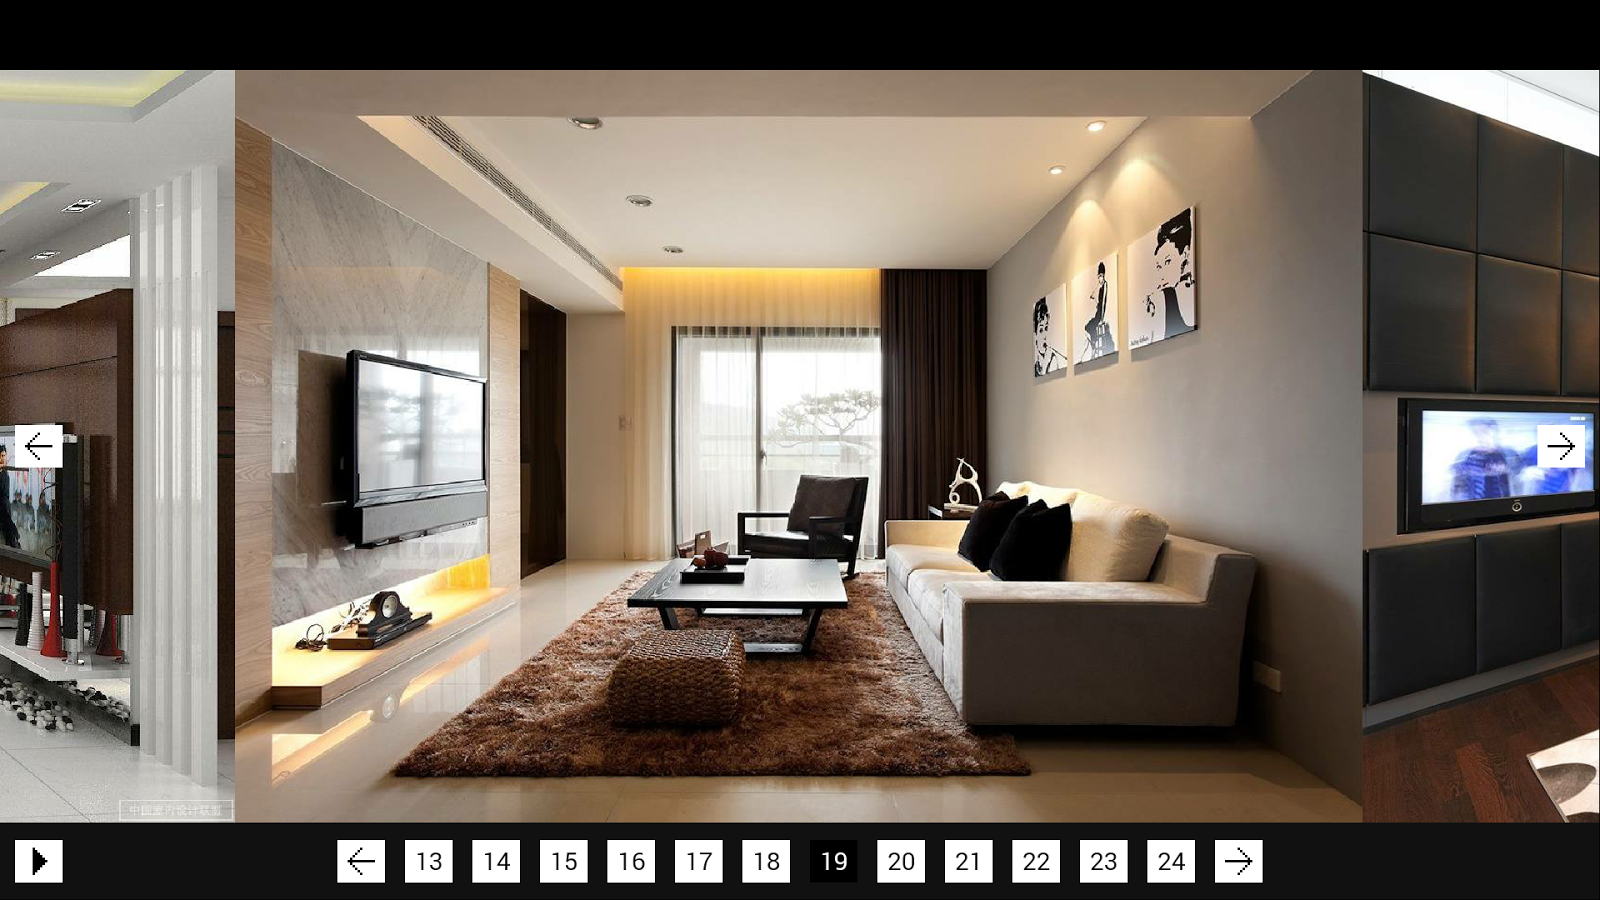 Home interior design android apps on google play for Interior design and home decor